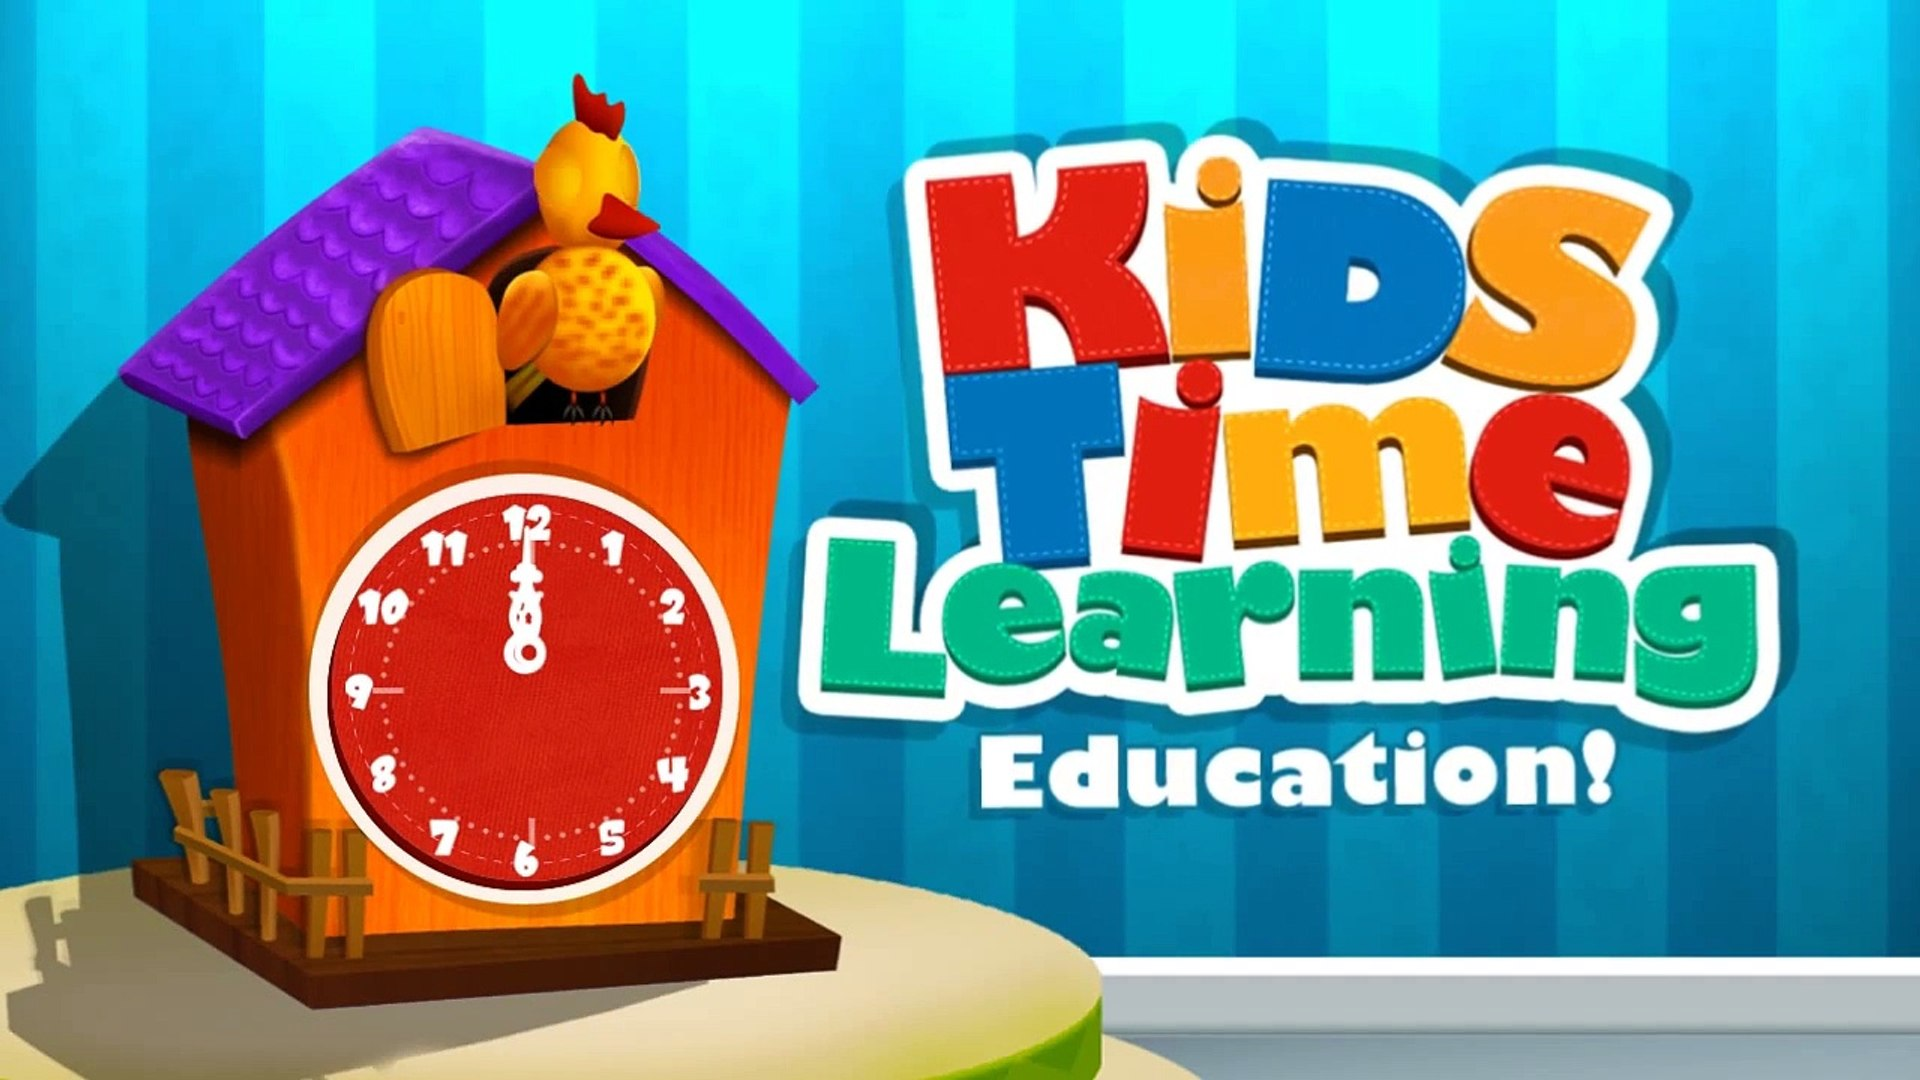 Kids Time Learning Education - iOS_Android Gameplay Trailer By GameiMax